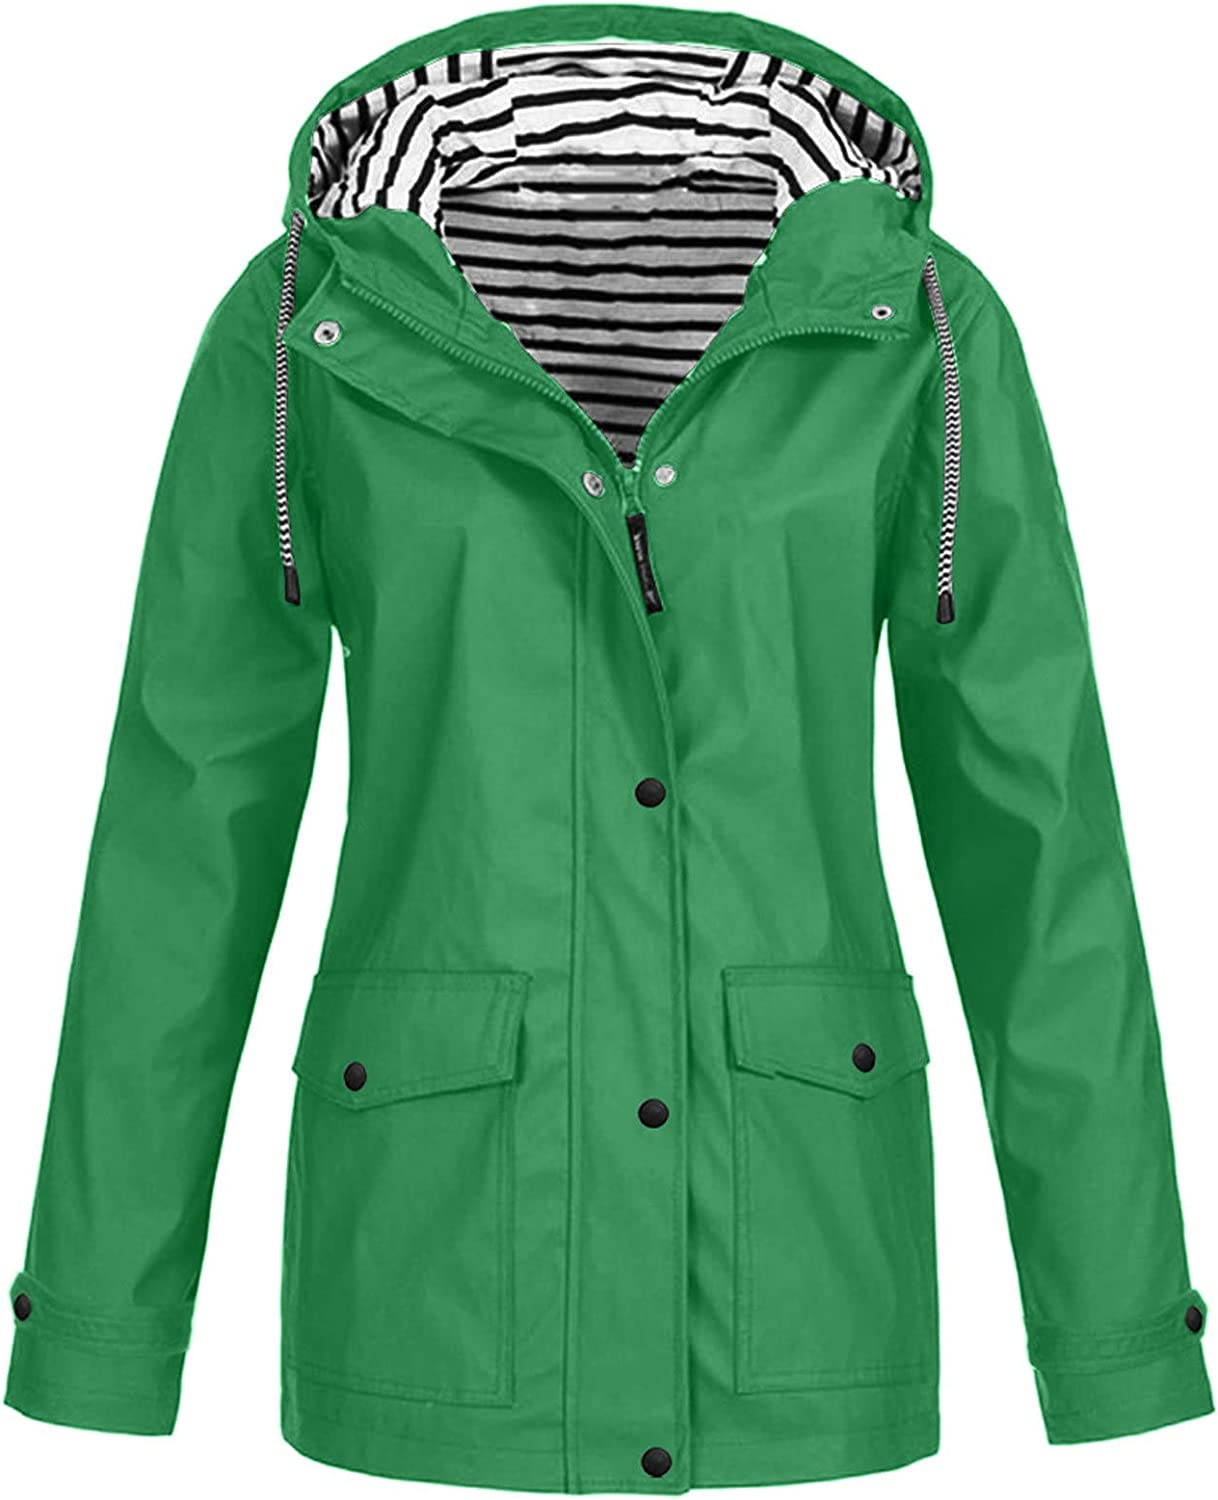 Women's Plus Size Rain Jacket Windproof Windbreaker Casual Comforty Jackets Drawstring Button Solid Coats with Pockets